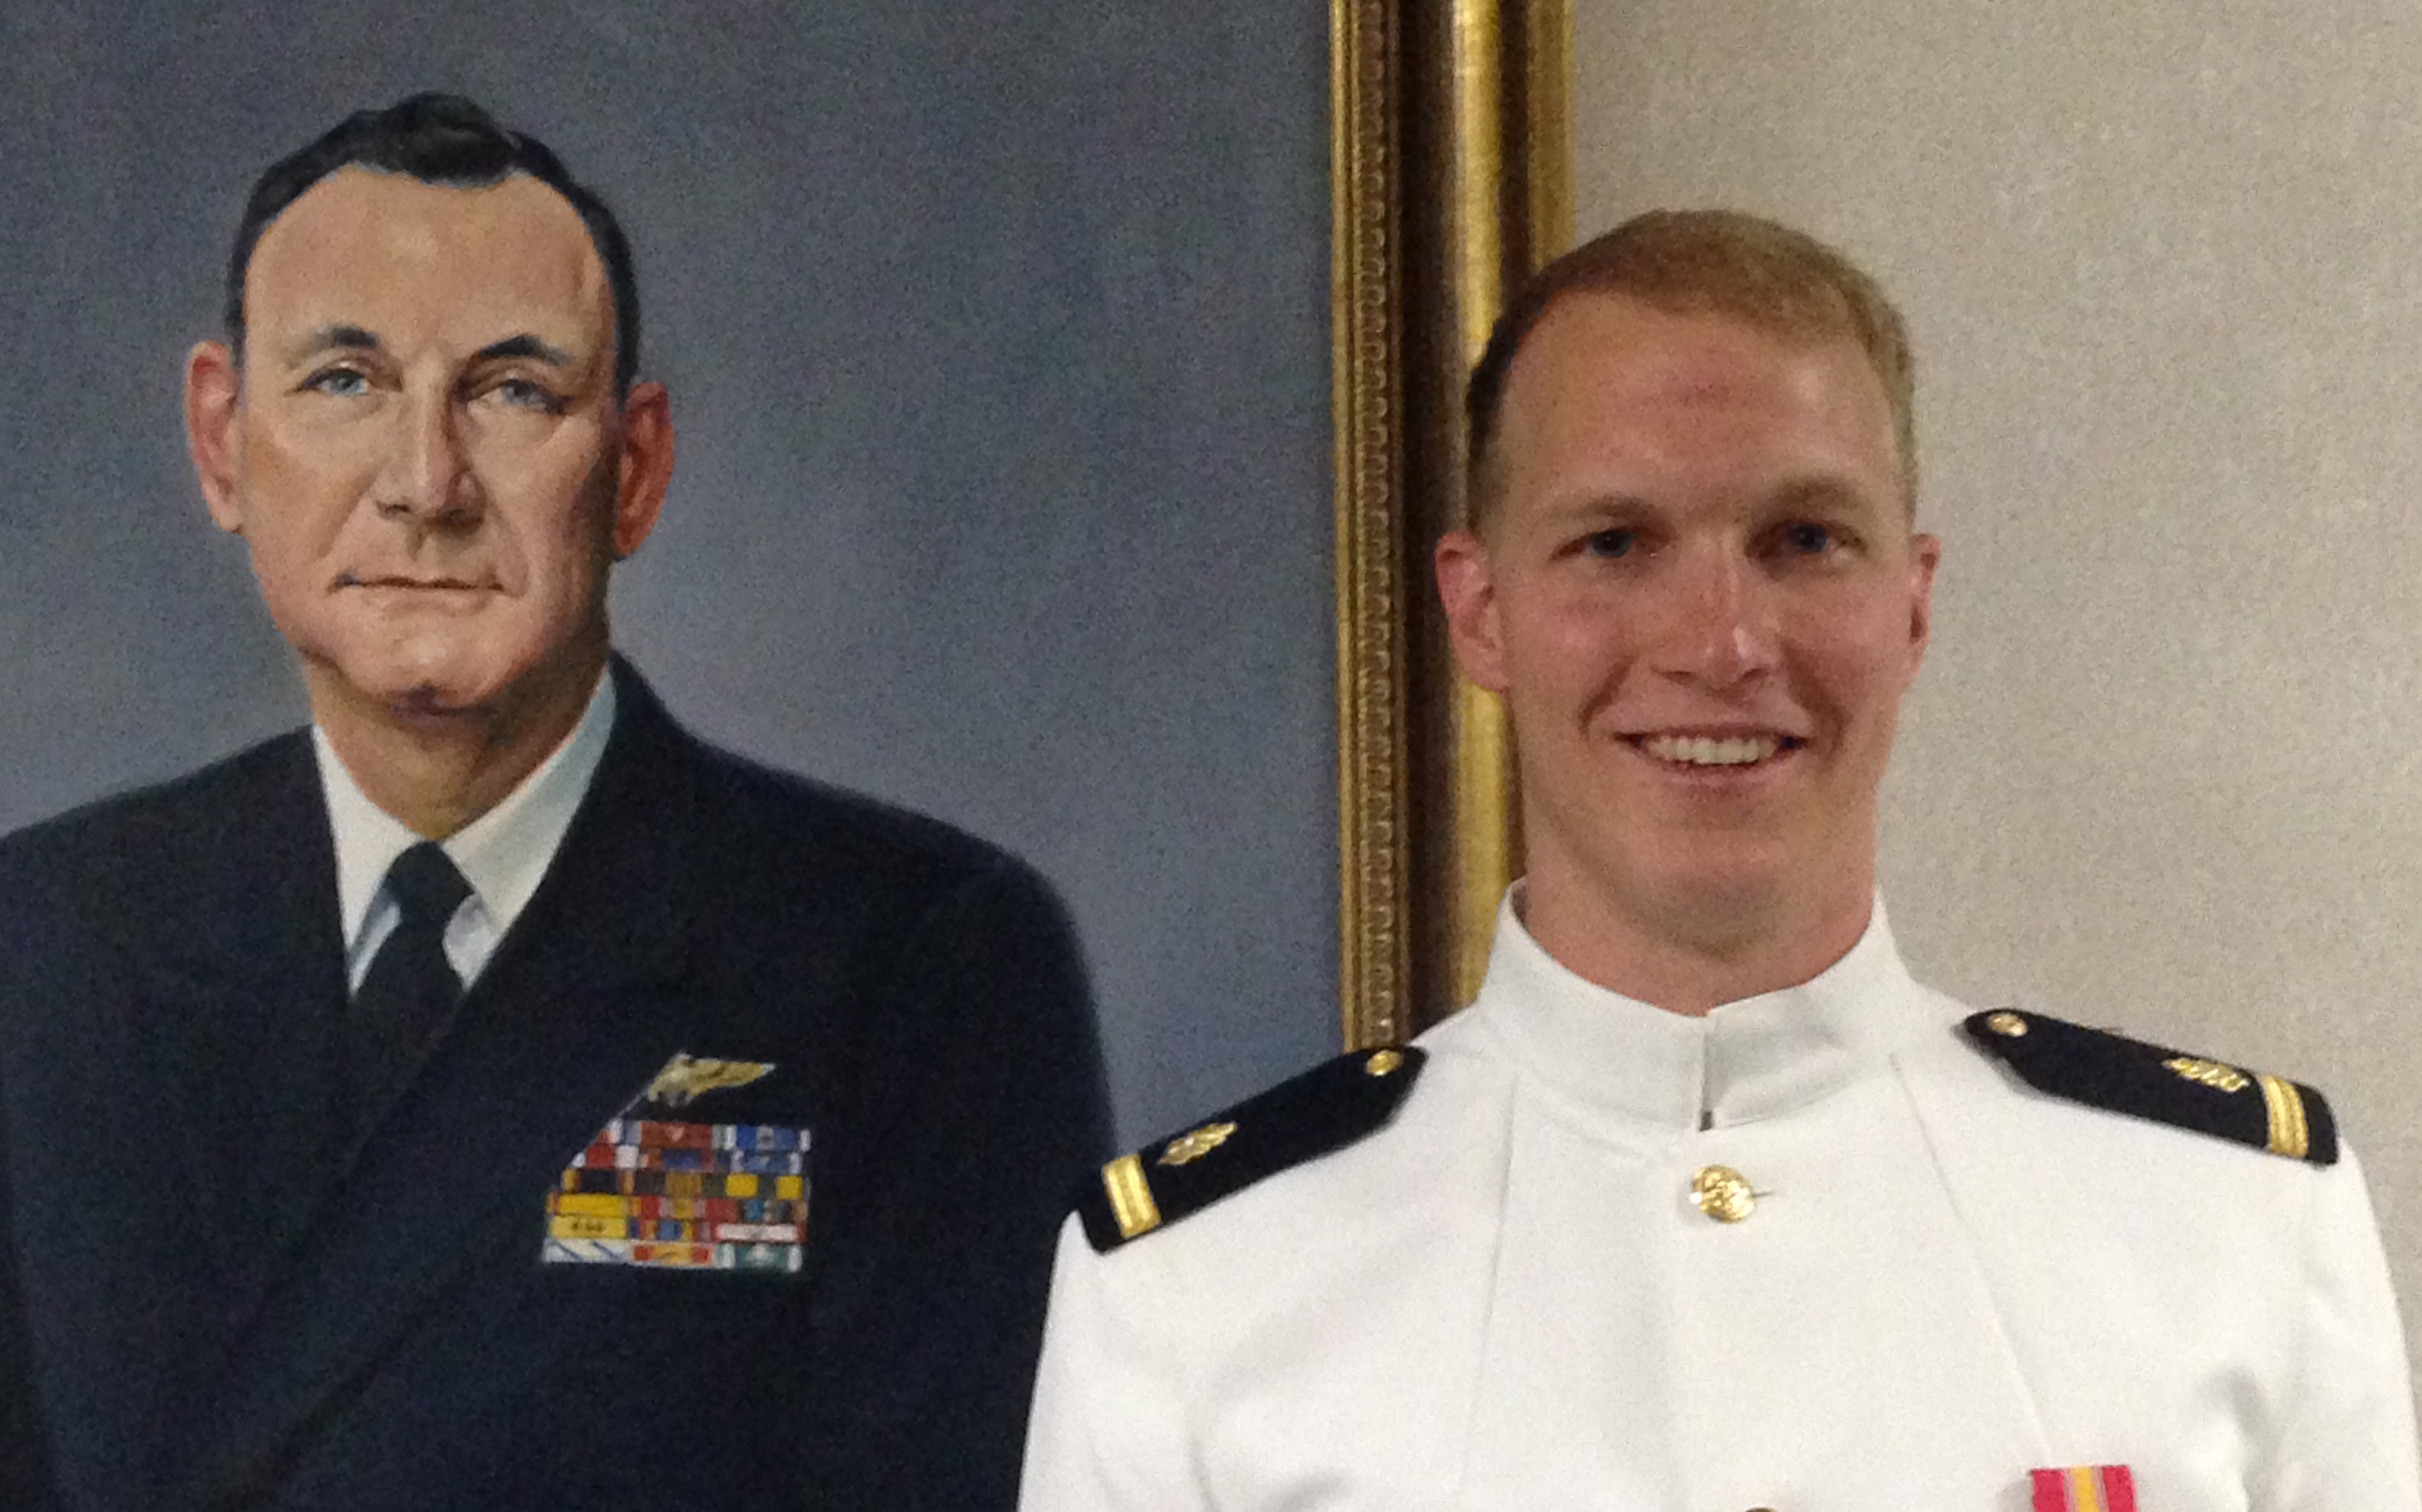 Hunt Hardisty next to a portrait of Admiral Huntington Hardisty at the Naval War College in Newport, Rhode Island.